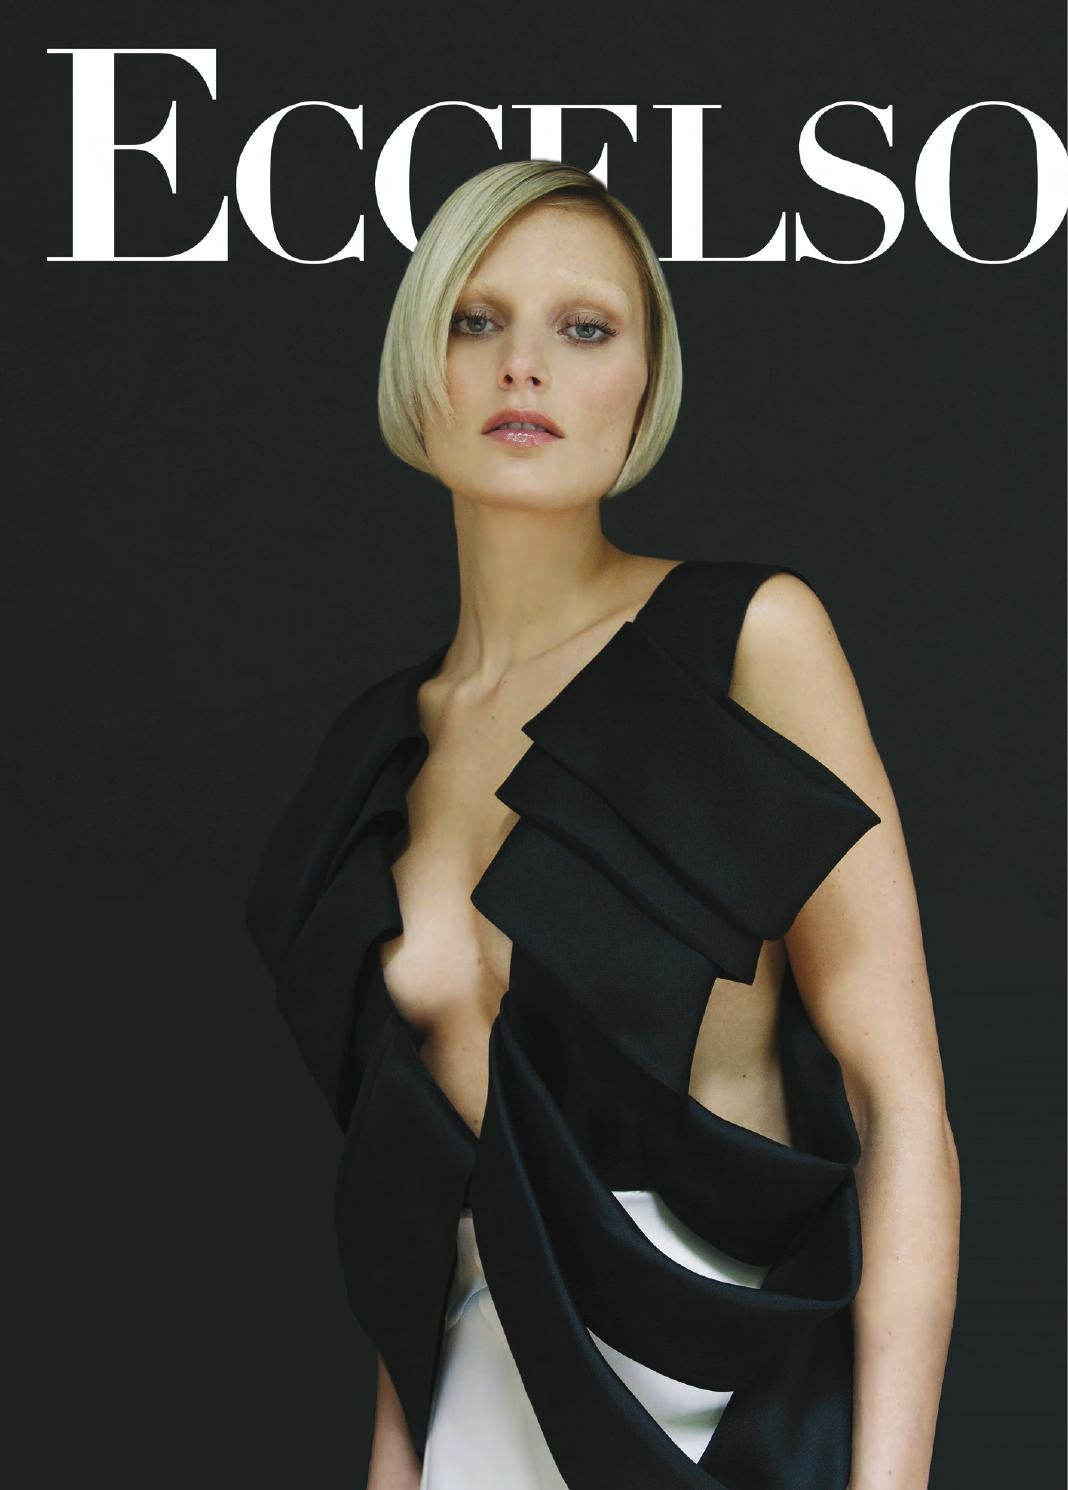 cc243ed9a7f36 Eccelso Automne   Hiver 2015 2016 by Eccelso Magazines - issuu